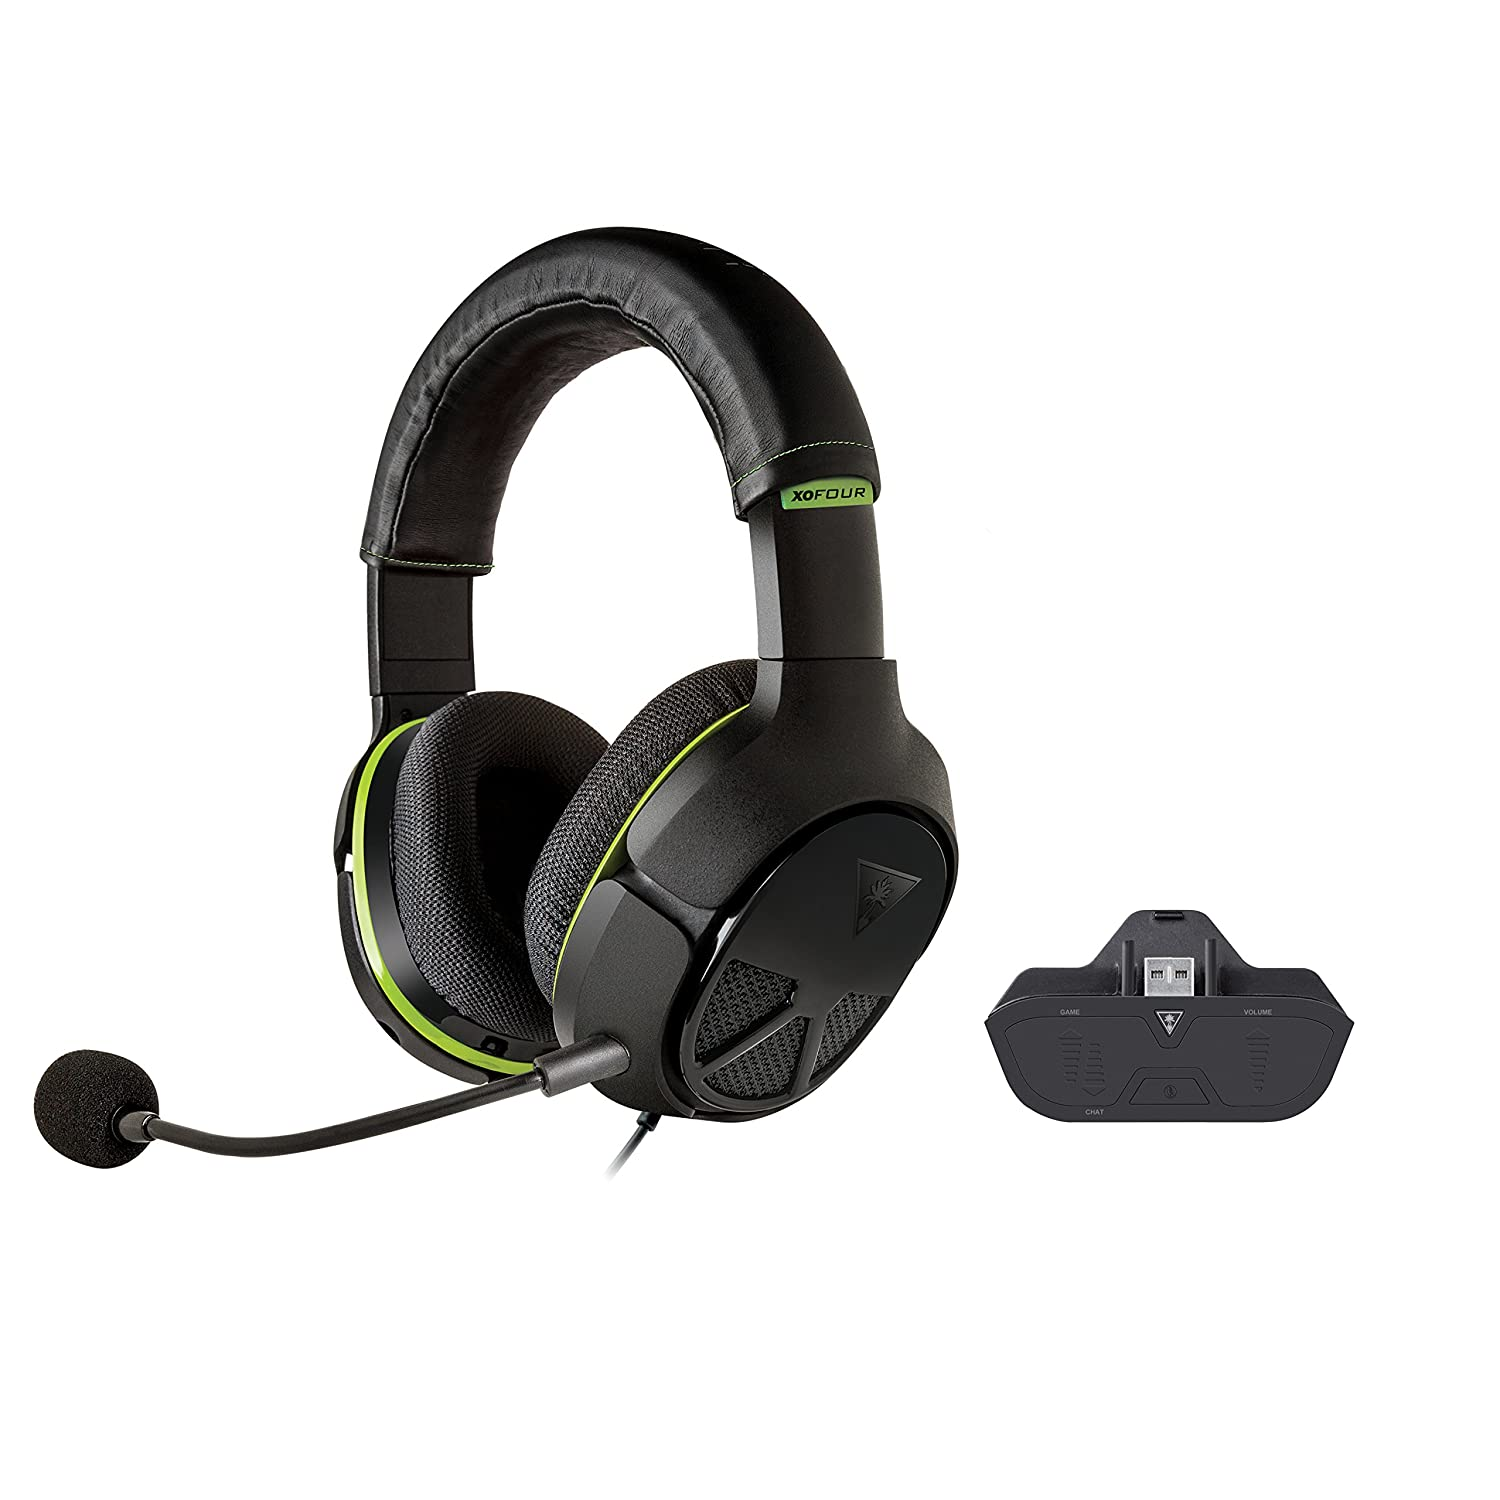 8e1be5b187f Turtle Beach - Ear Force XO Four Stealth Gaming Headset - Xbox One  (Renewed): xbox_one: Computer and Video Games - Amazon.ca